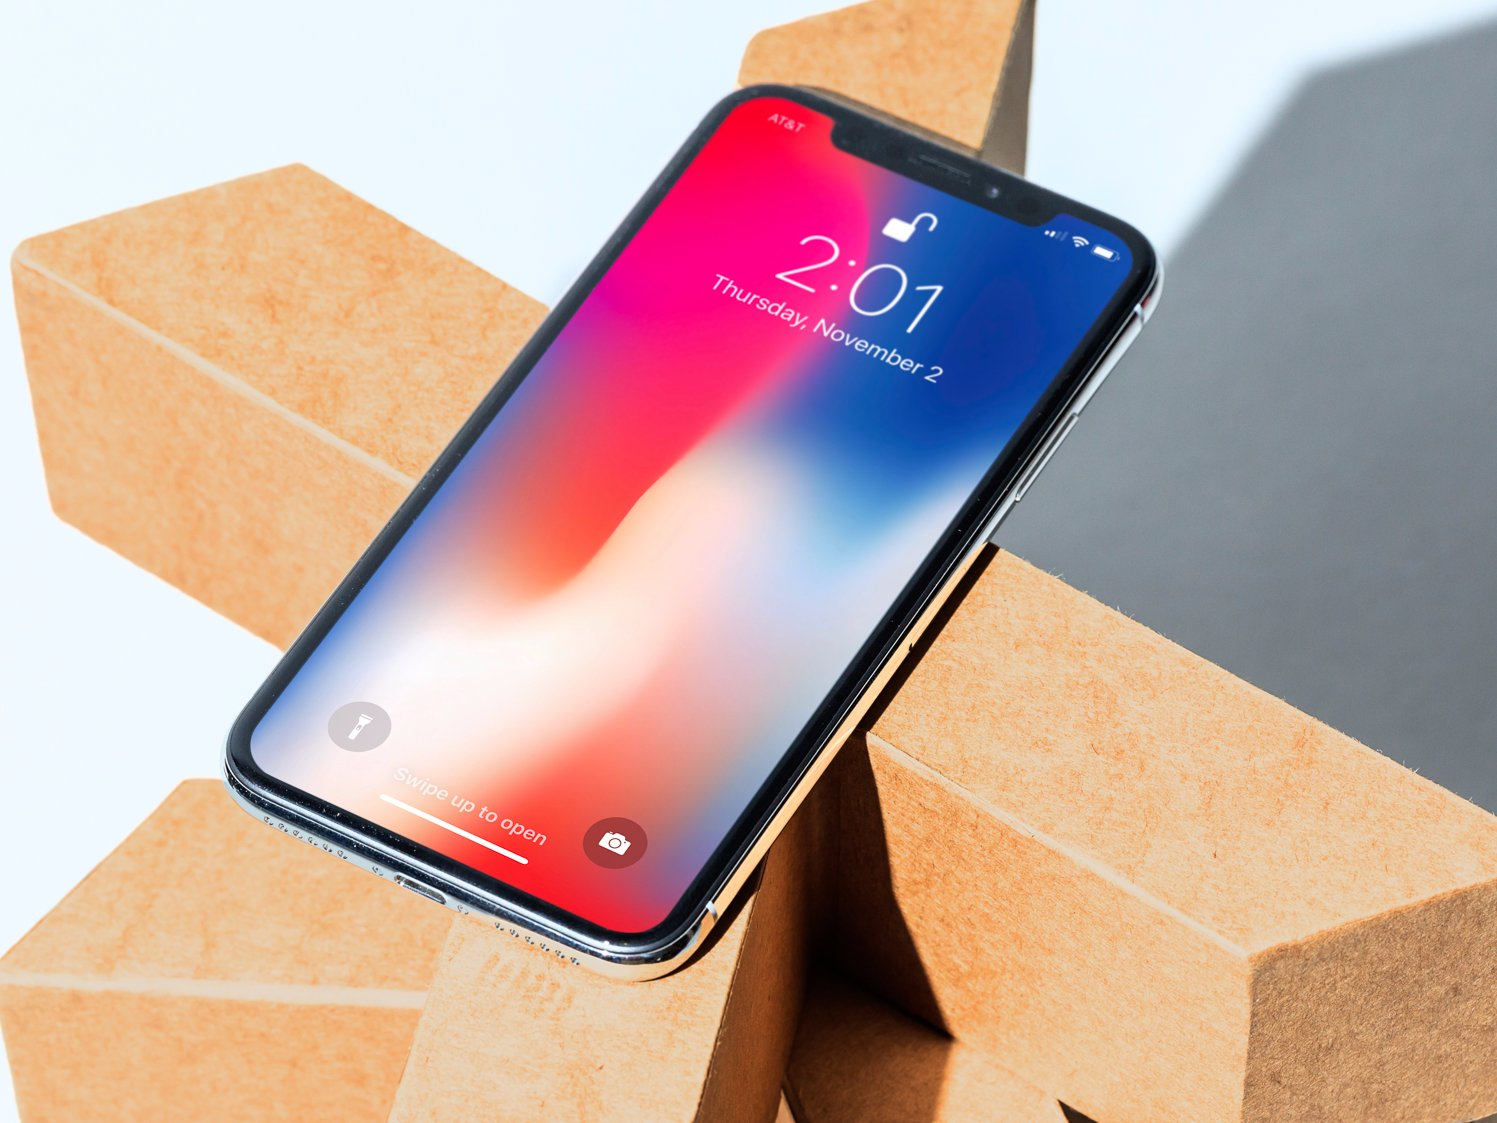 Wall Street Analyst Predicts Apple Will Launch A Supersized iPhone X Next Year